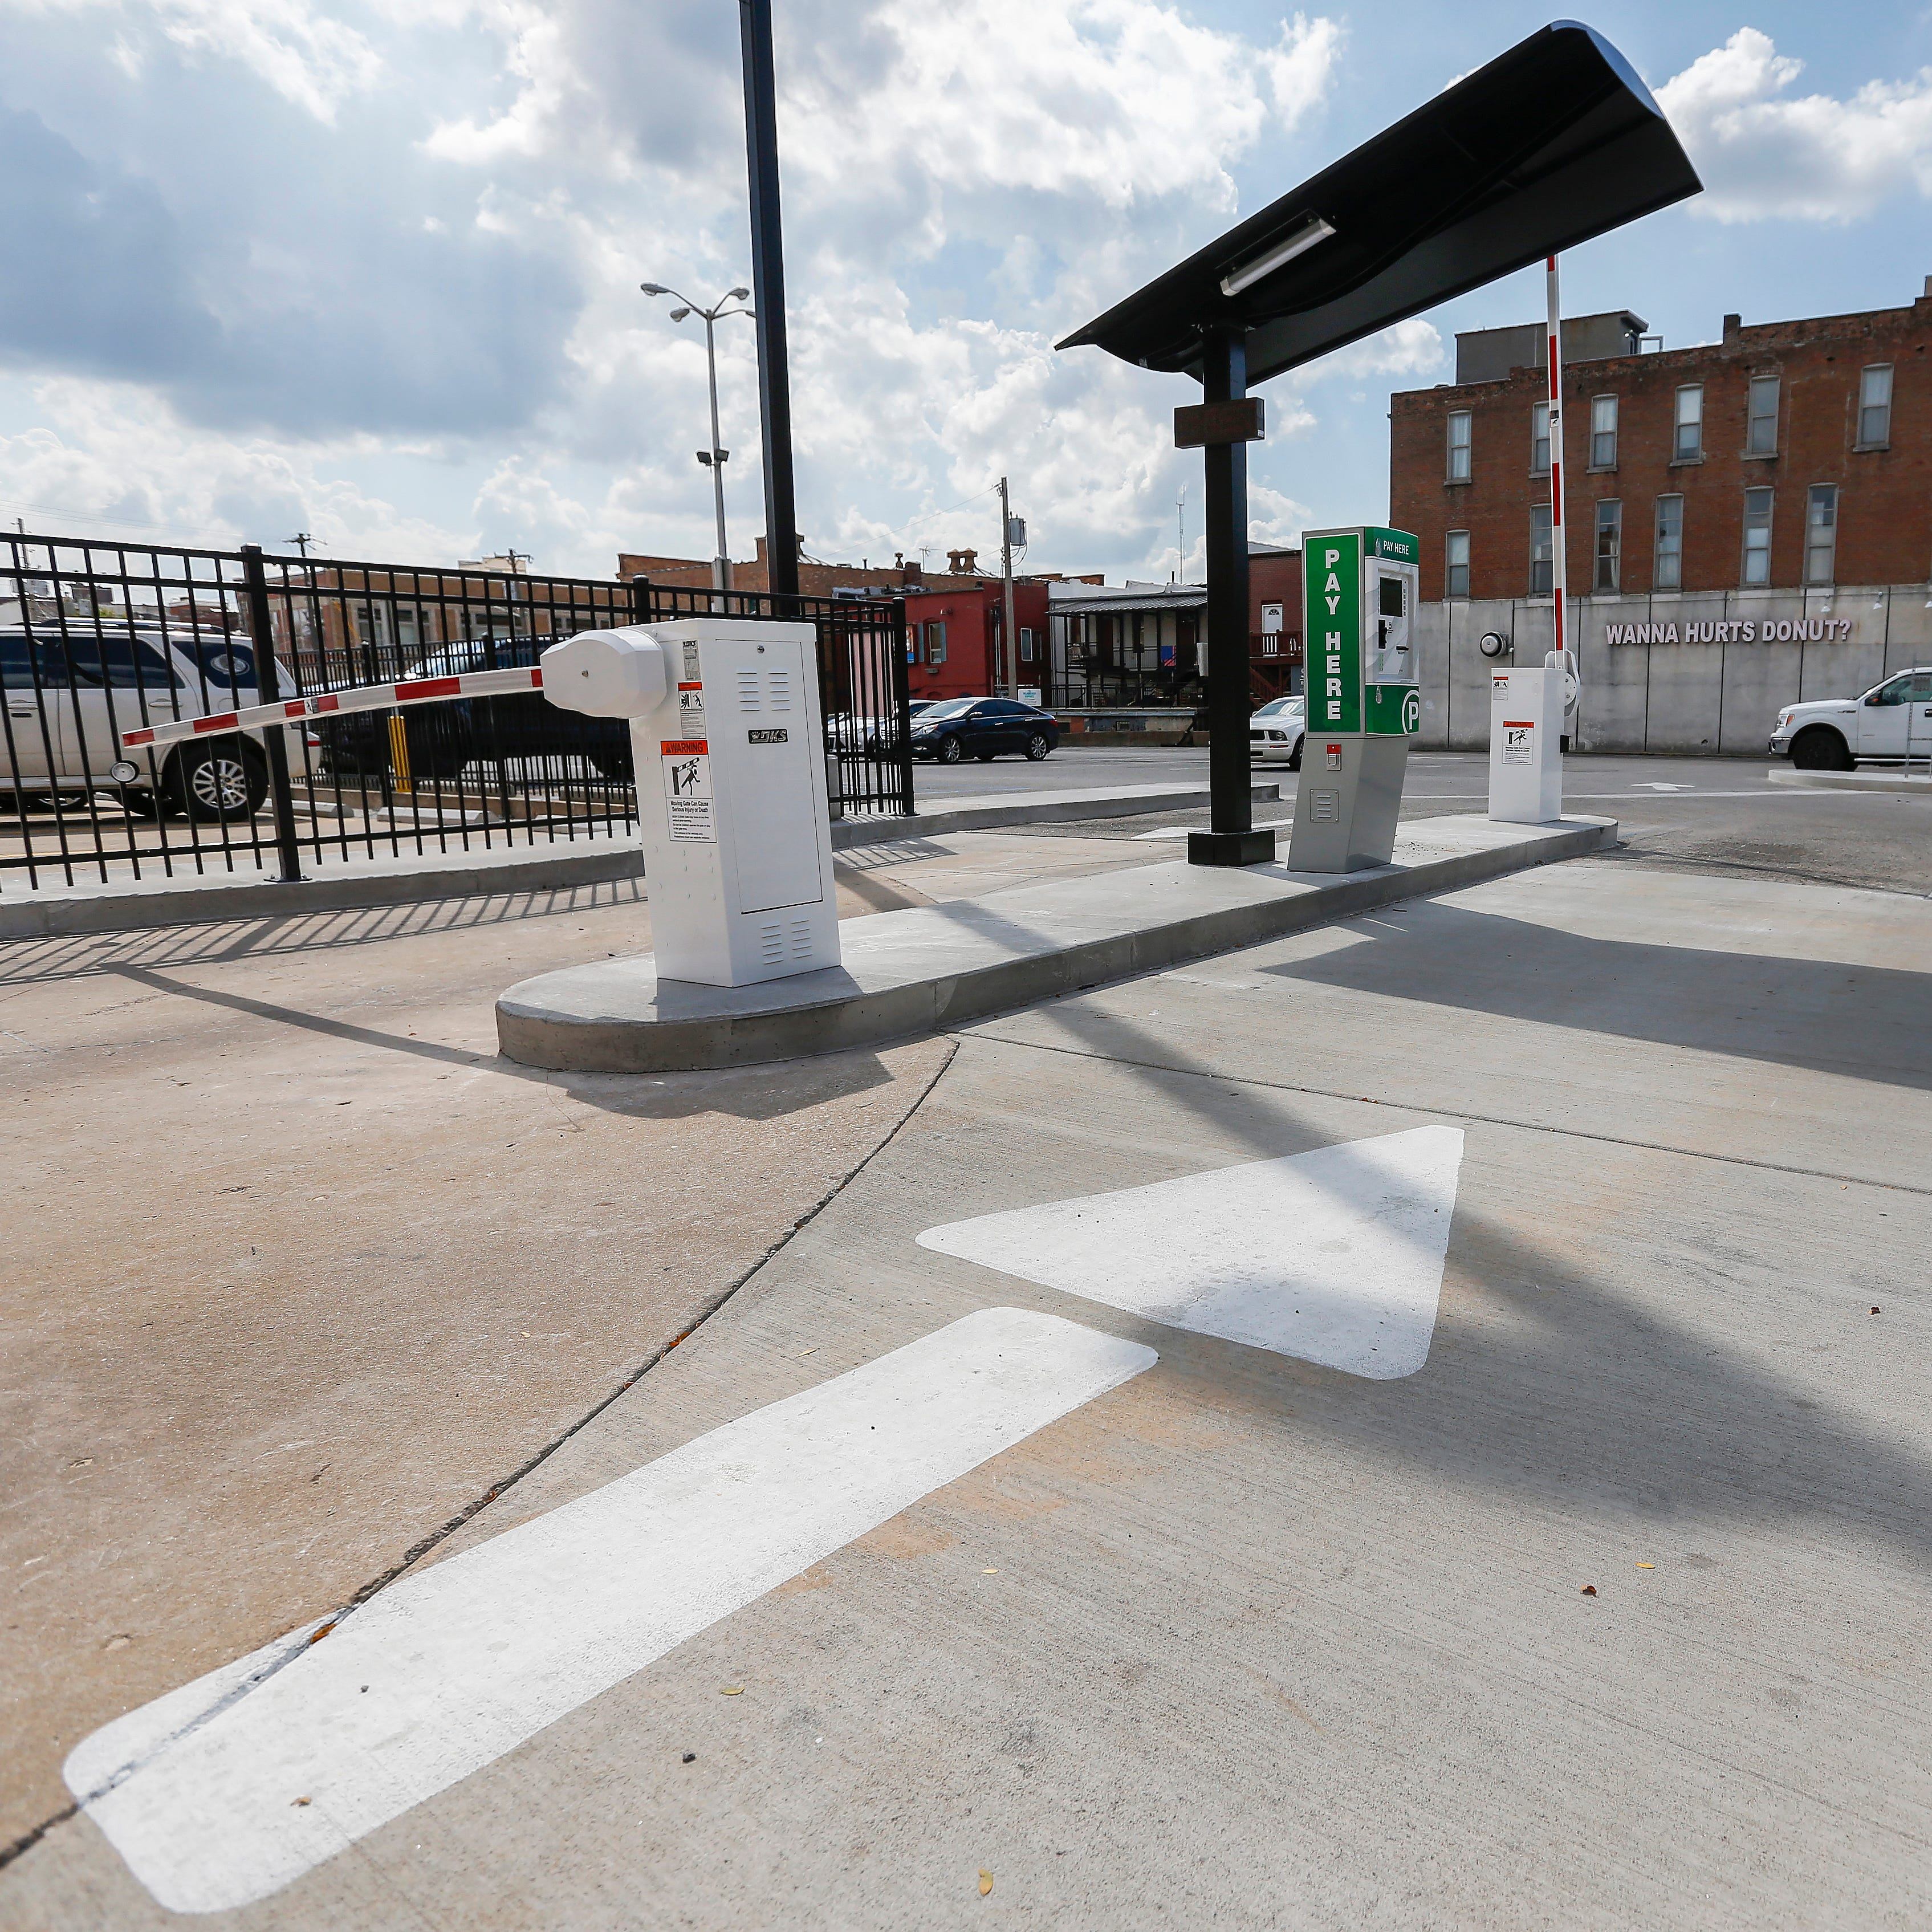 Pay gates are coming to a once-public downtown Springfield parking lot